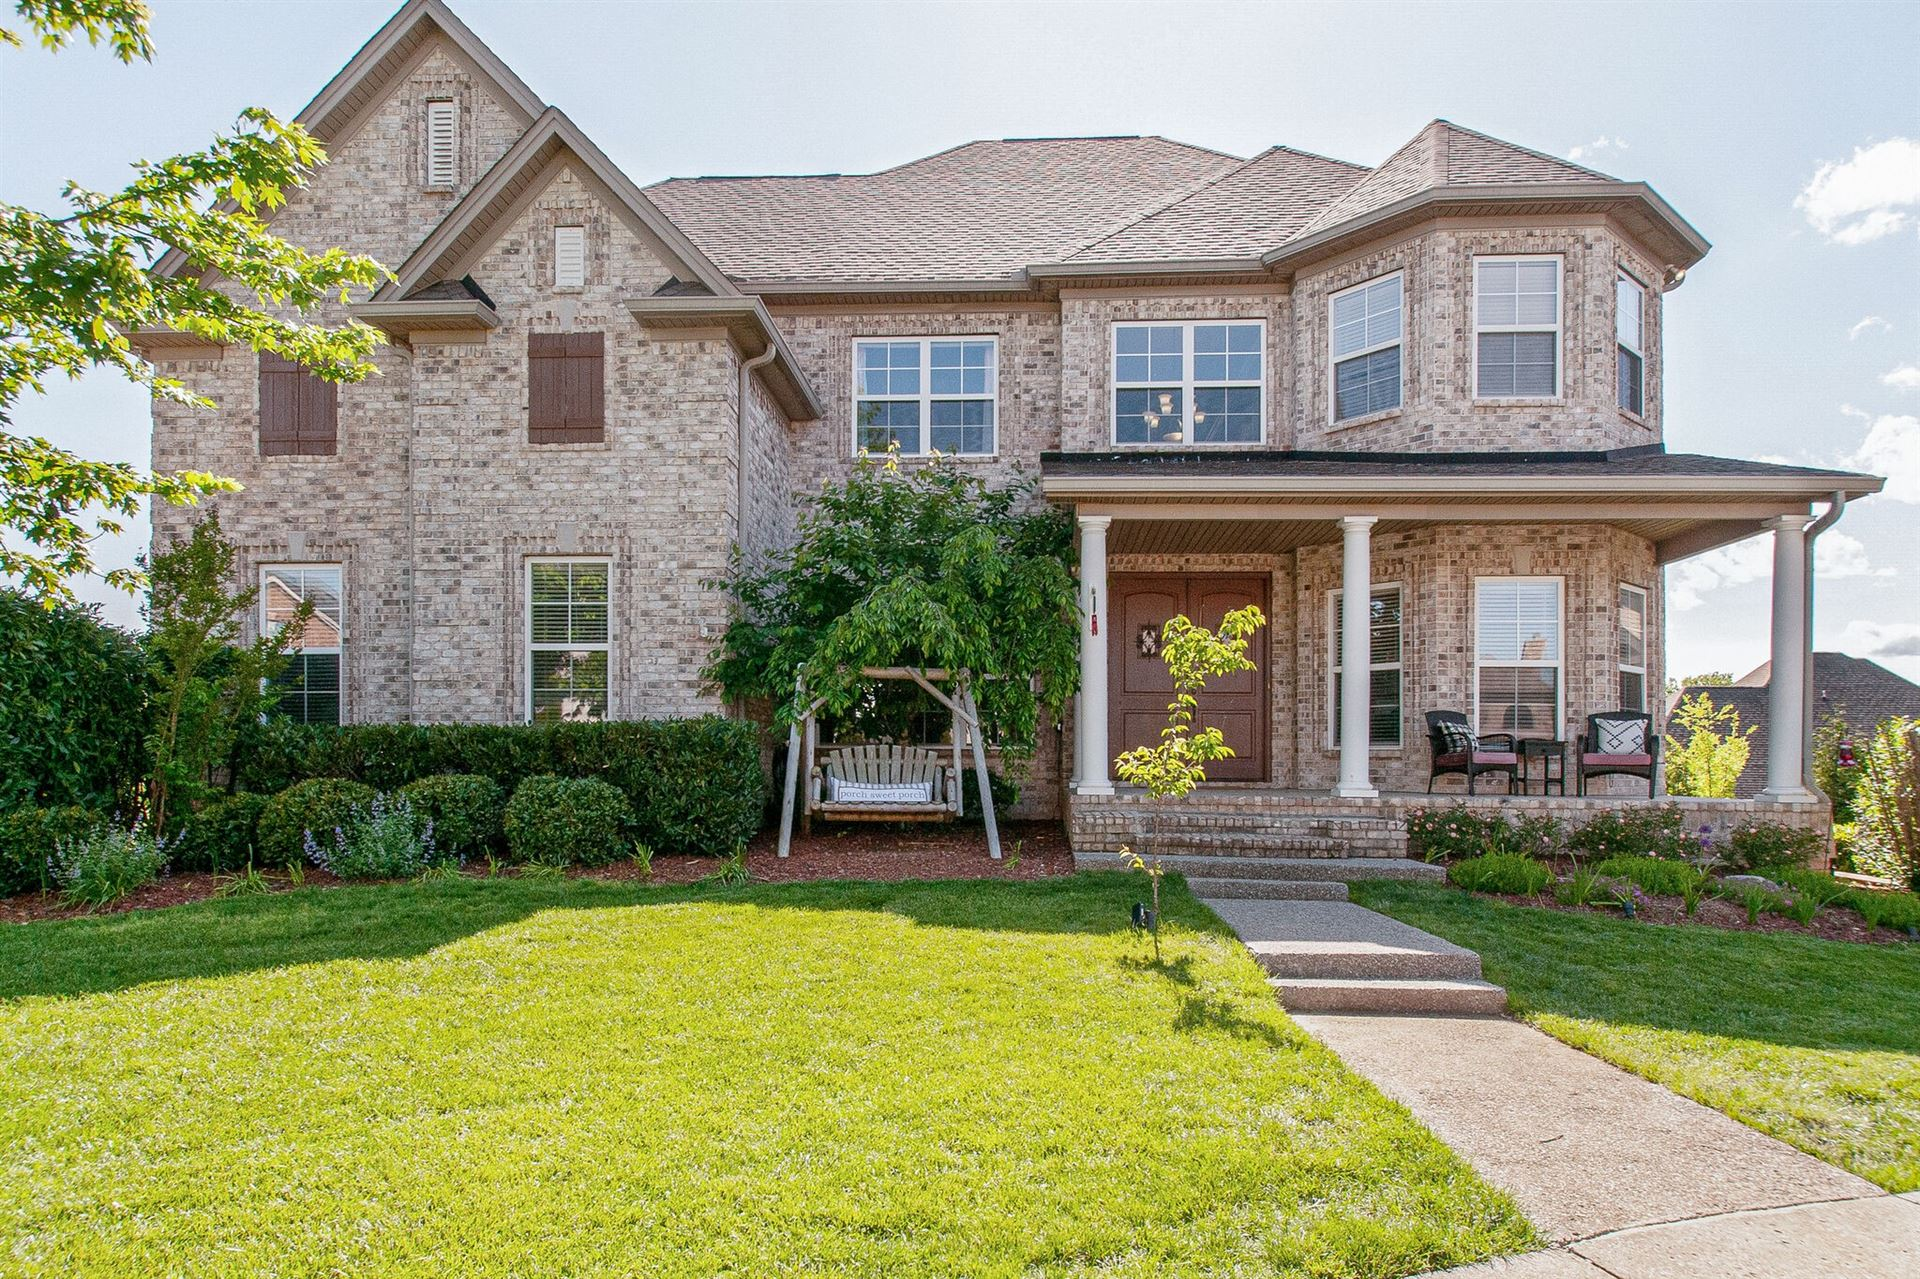 Photo of 5007 Perth Ct, Spring Hill, TN 37174 (MLS # 2252324)